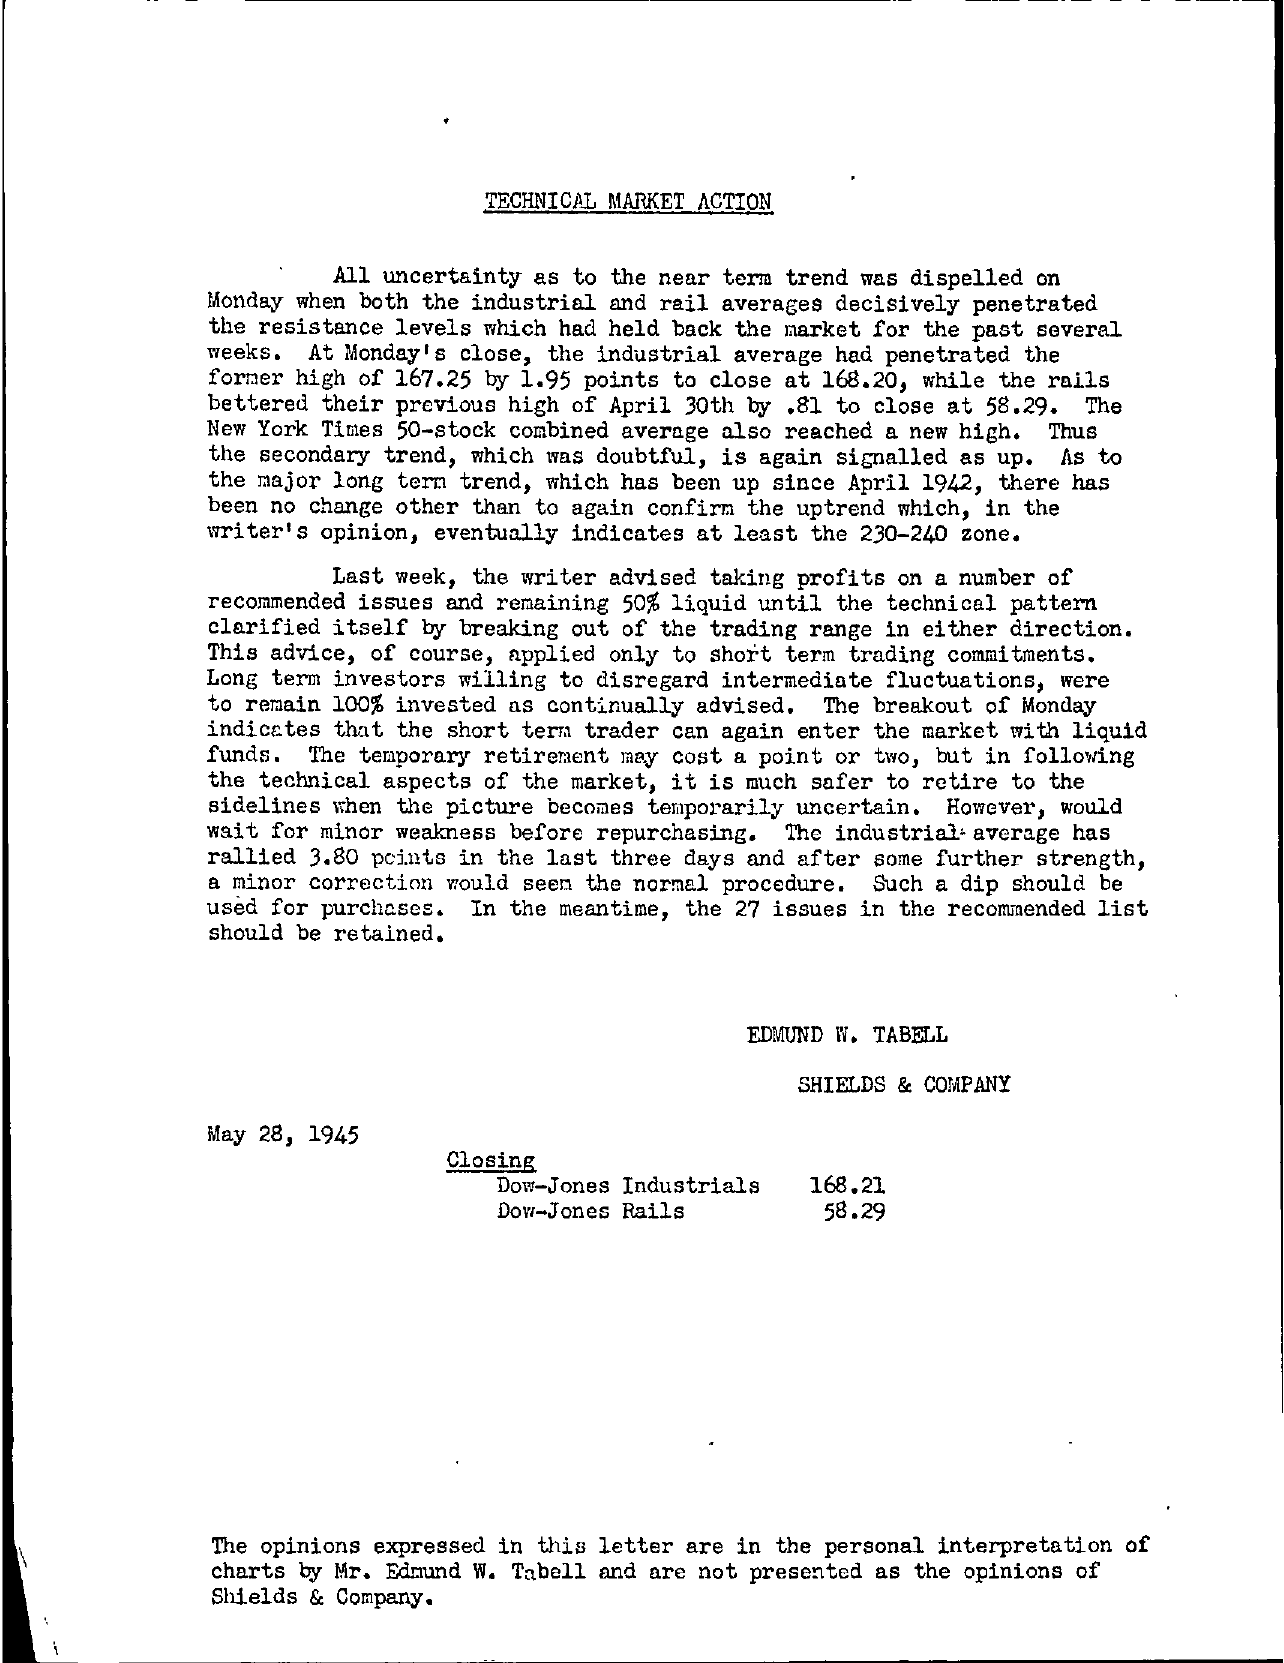 Tabell's Market Letter - May 28, 1945